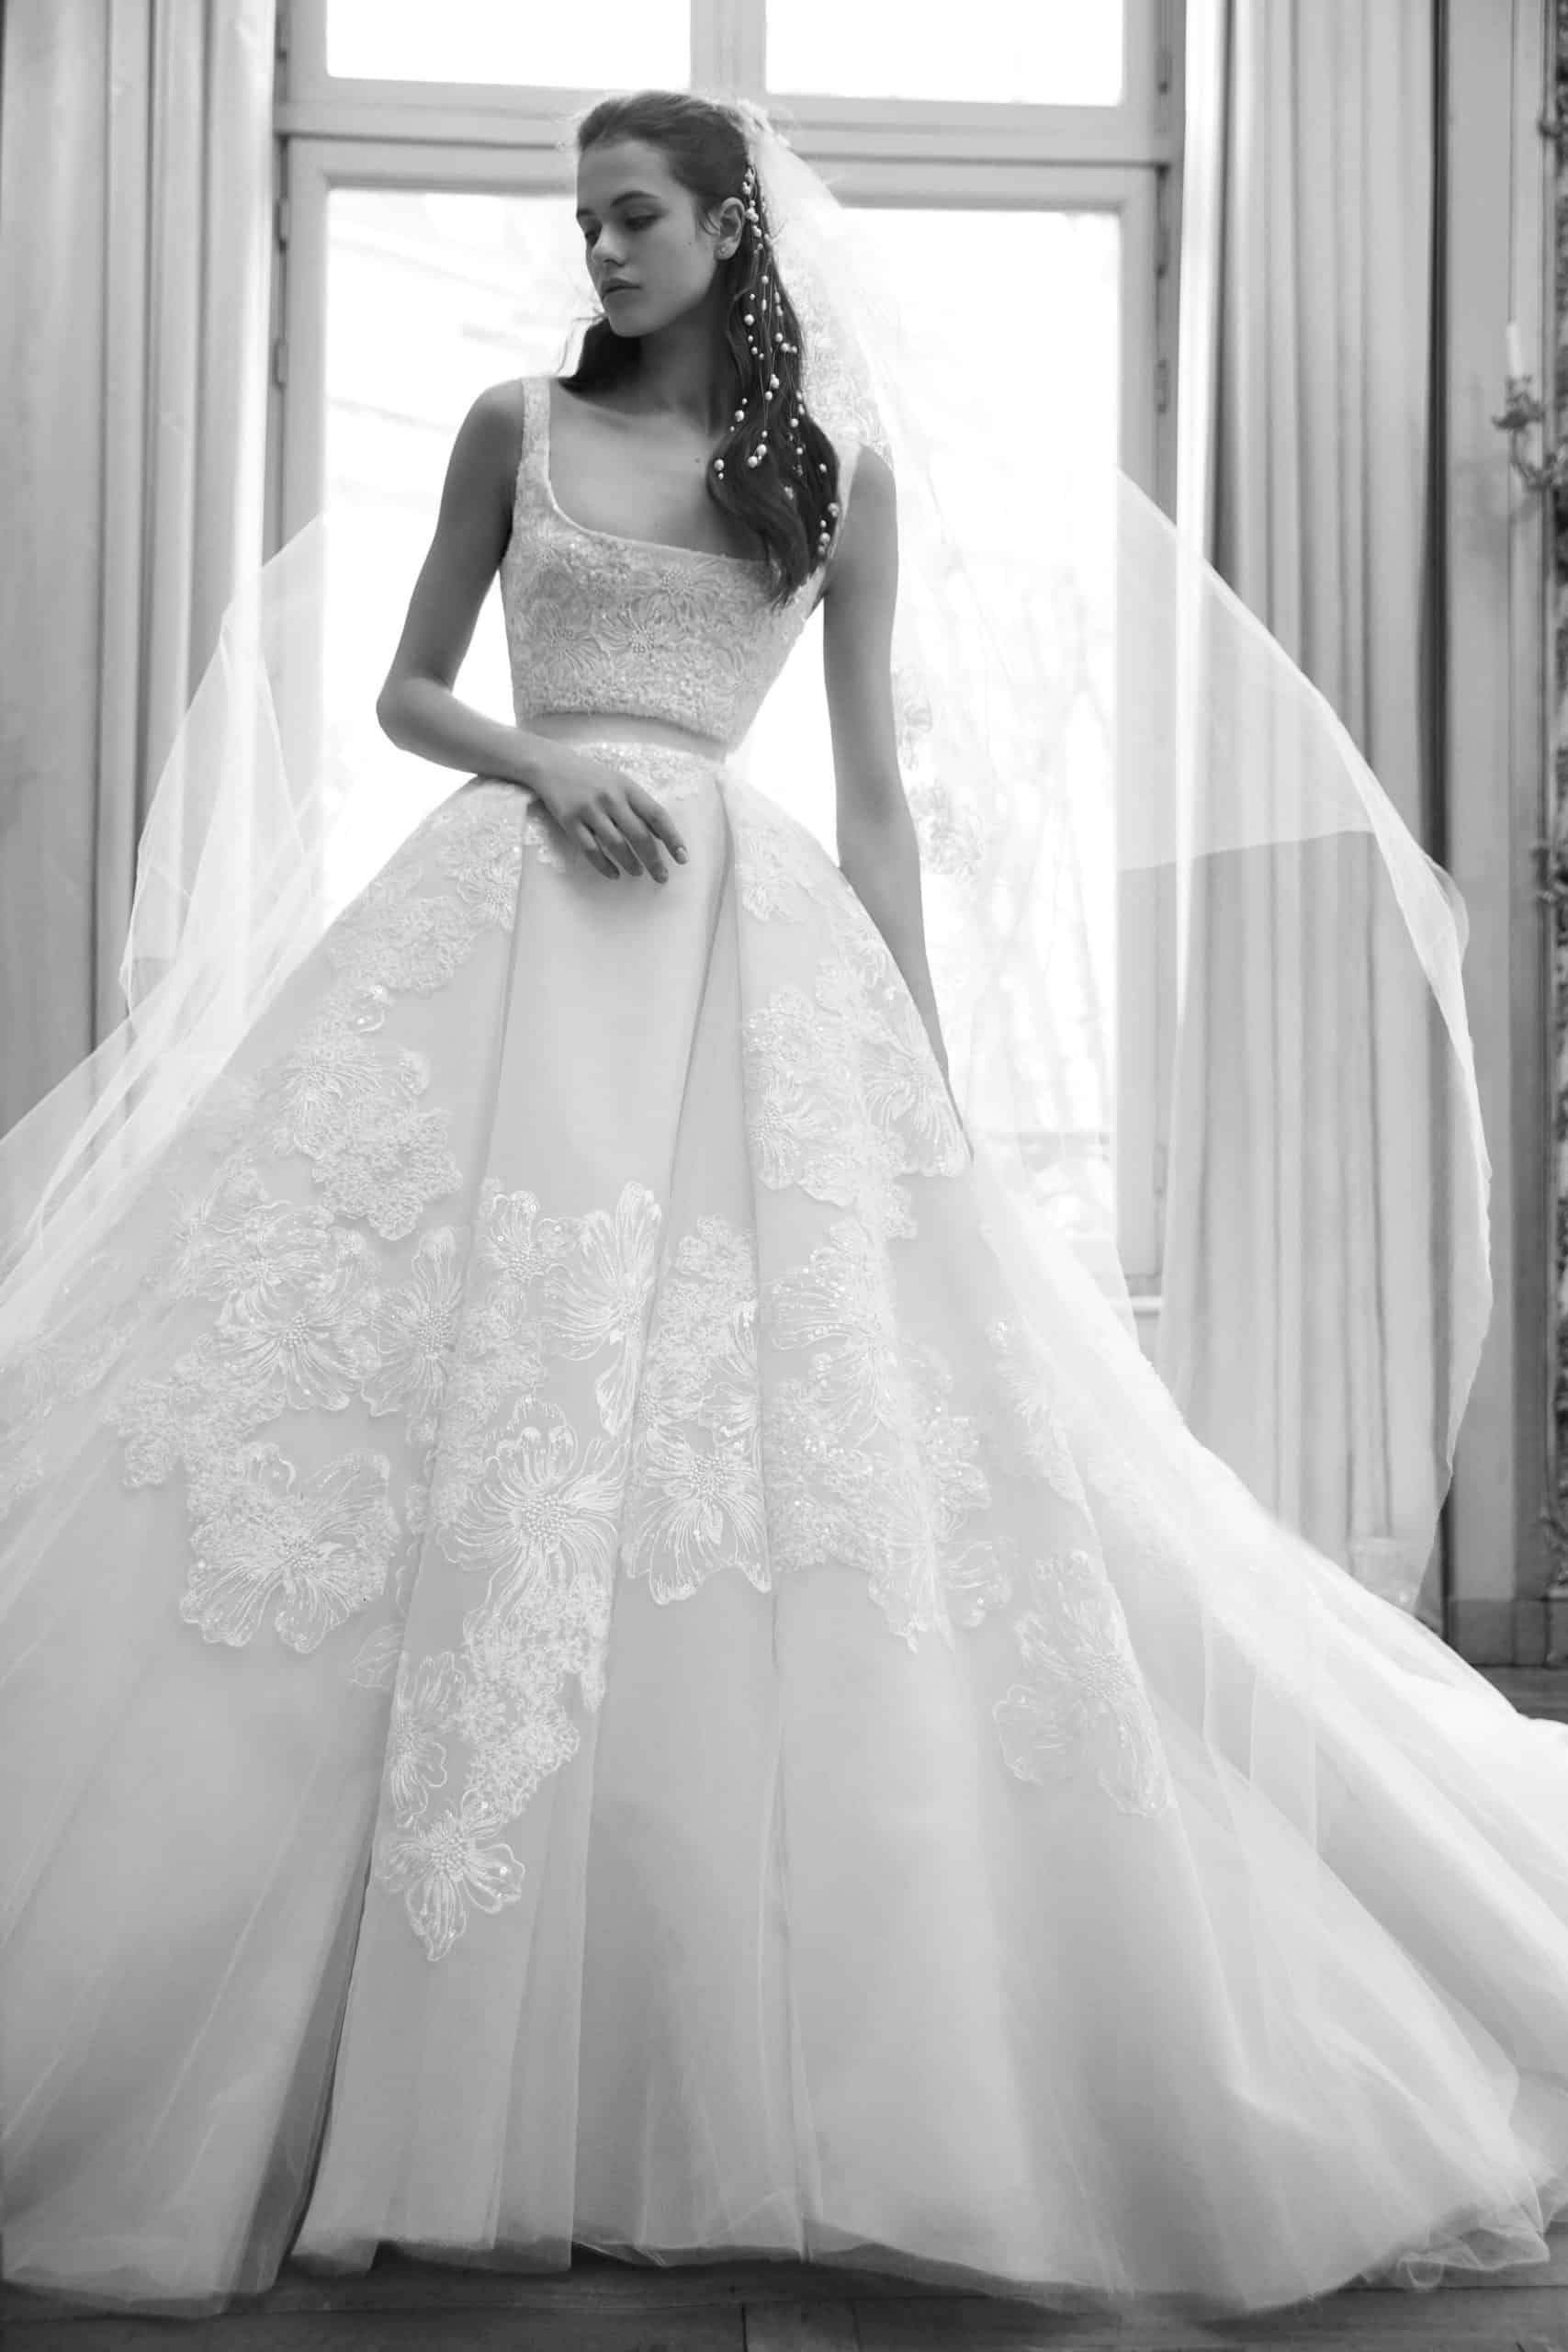 wedding dress with extra volume skirt by Elie Saab